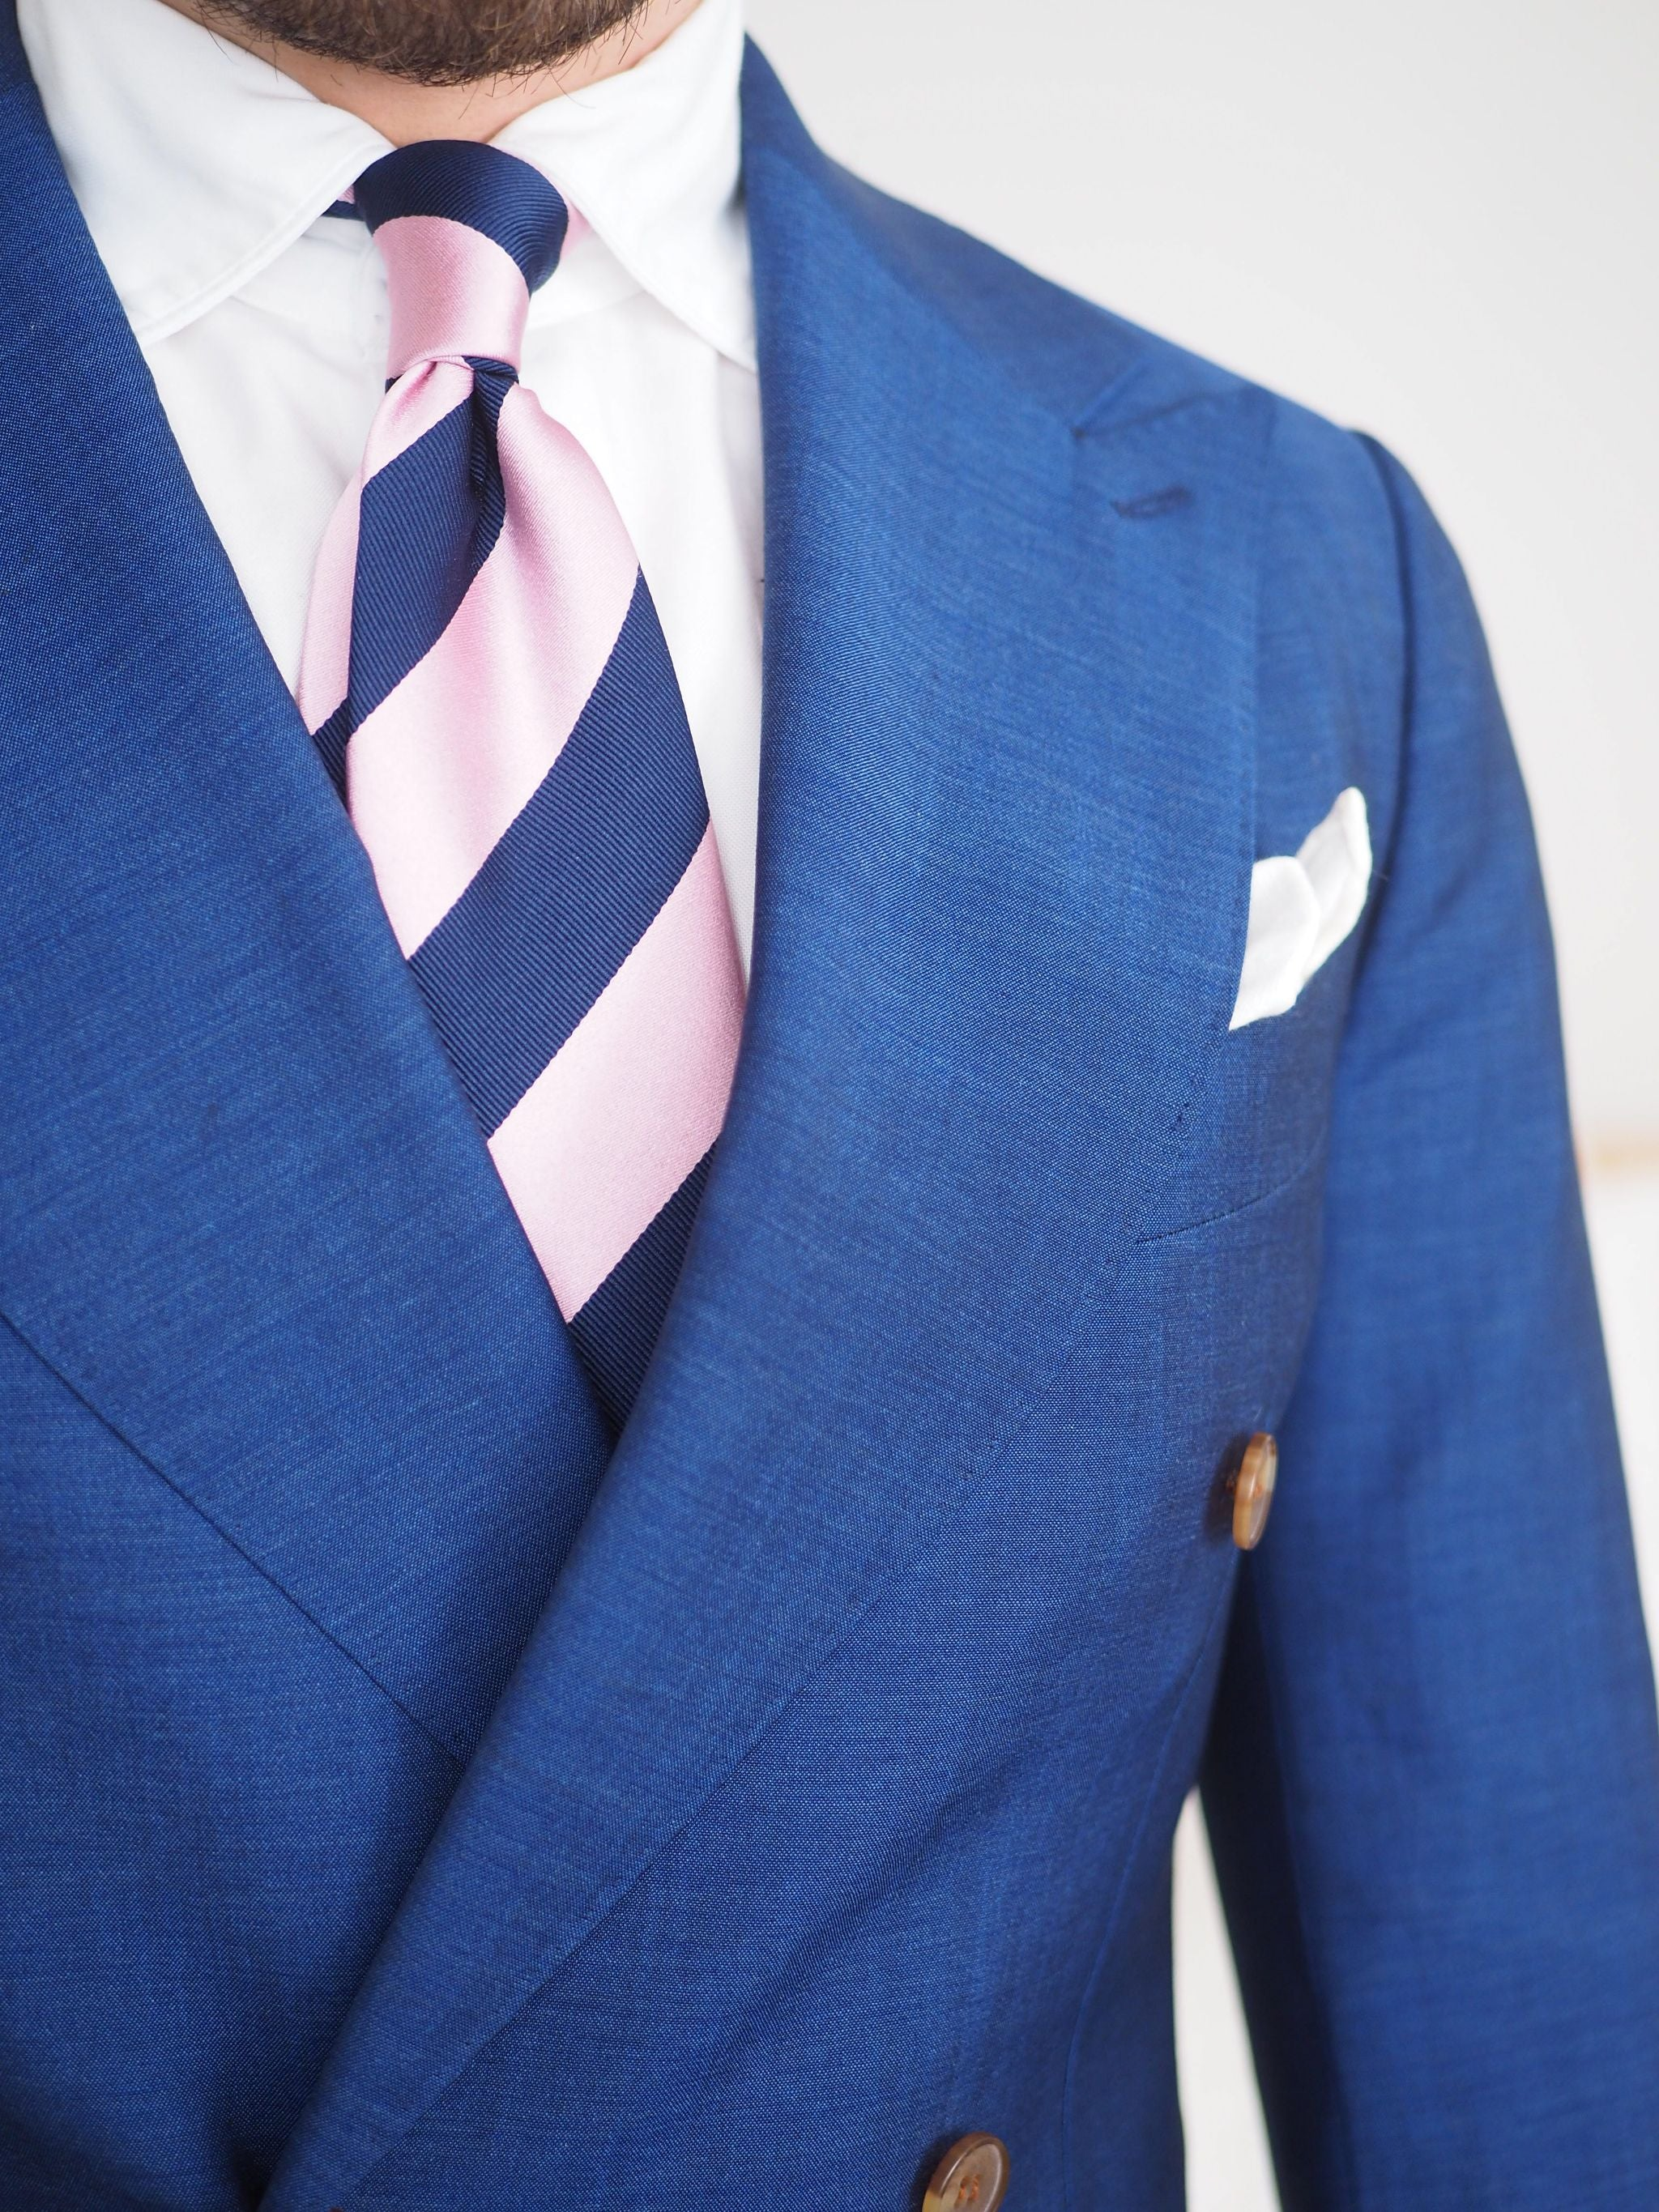 Blue suits - Striped silk tie close-up